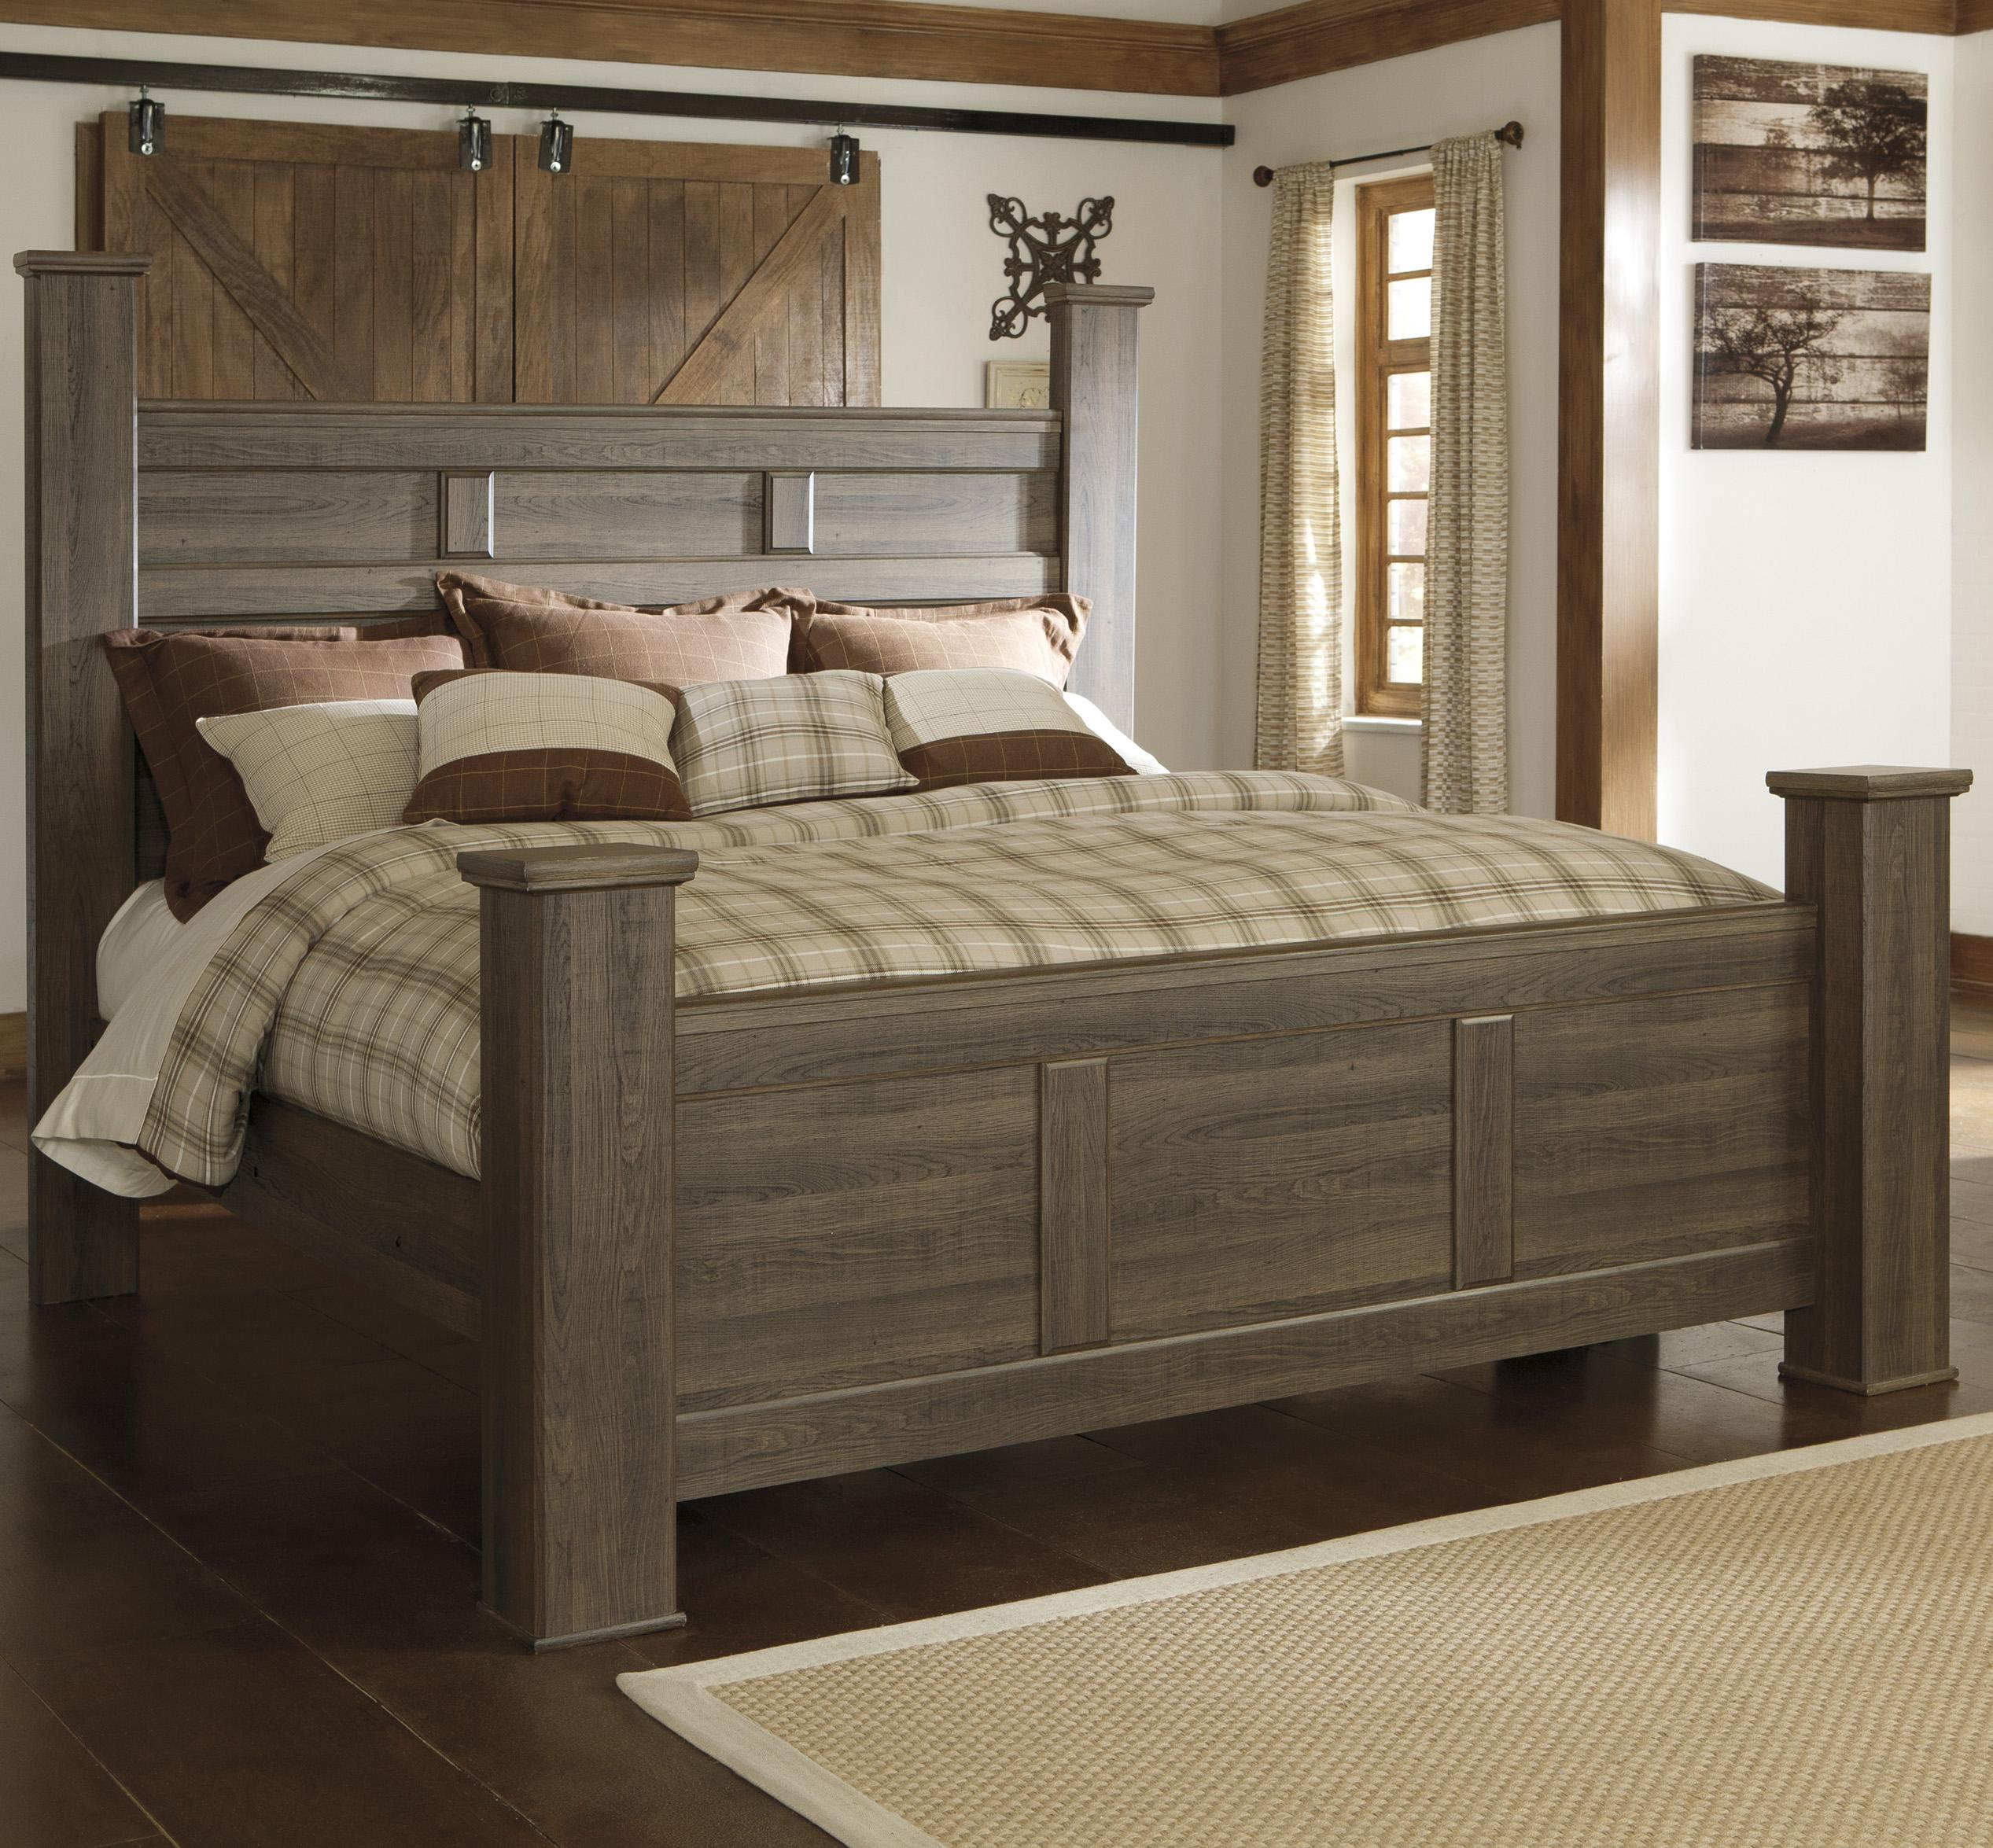 Transitional California King Poster Bed by Signature Design by